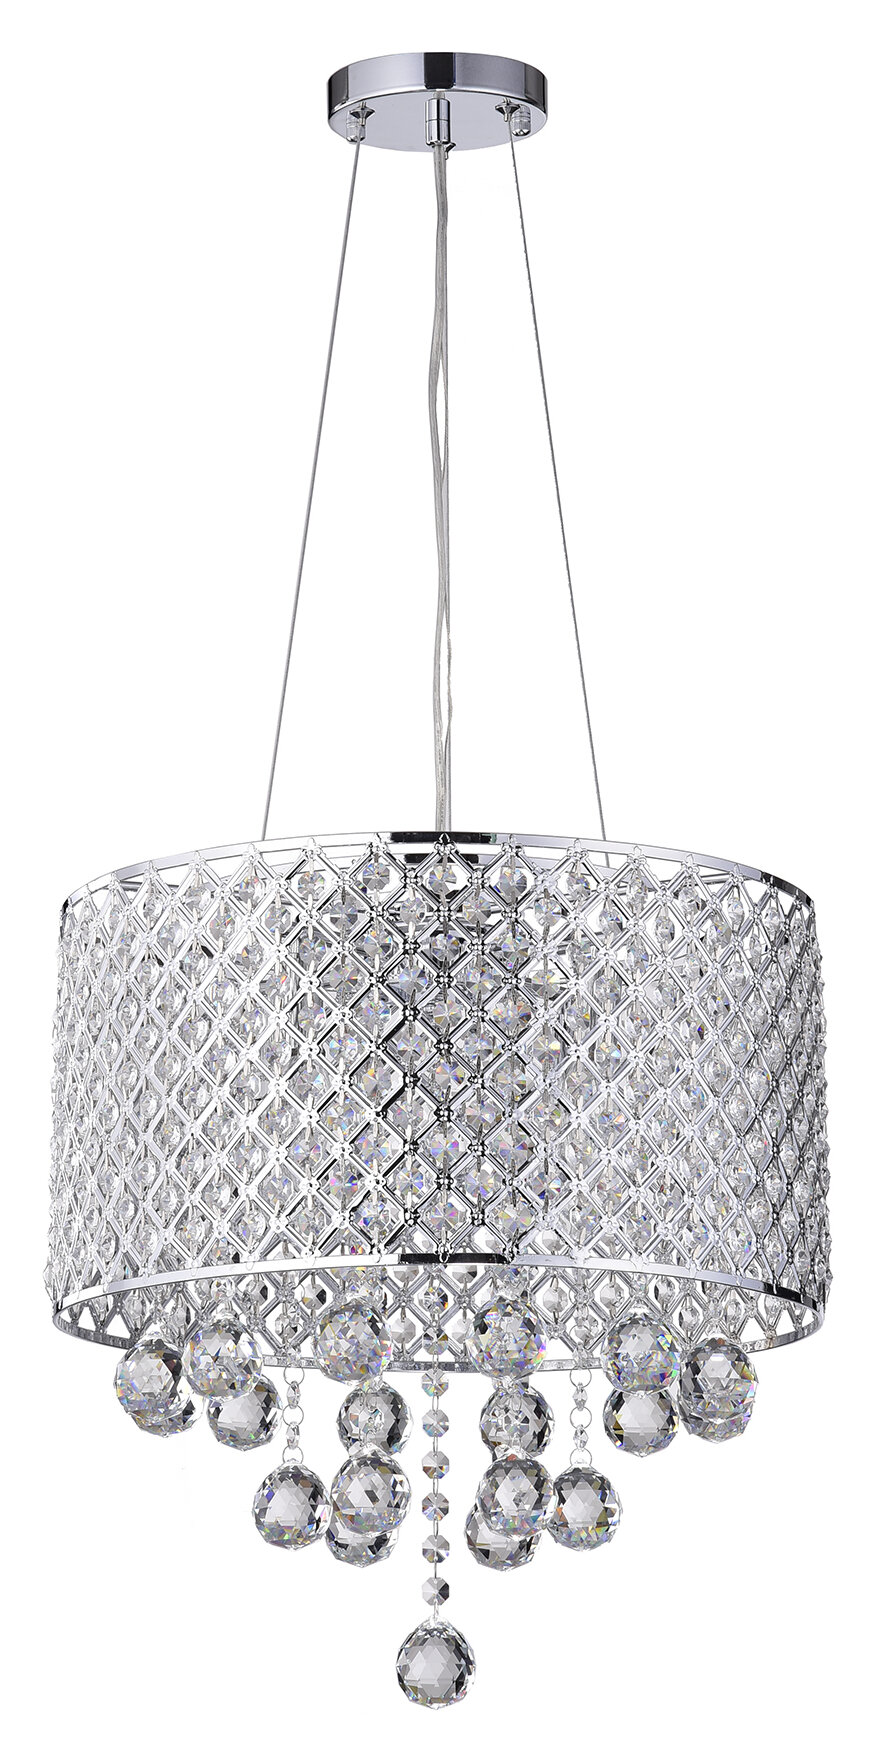 House of Hampton Ginnia 4-Light Crystal Chandelier & Reviews | Wayfair